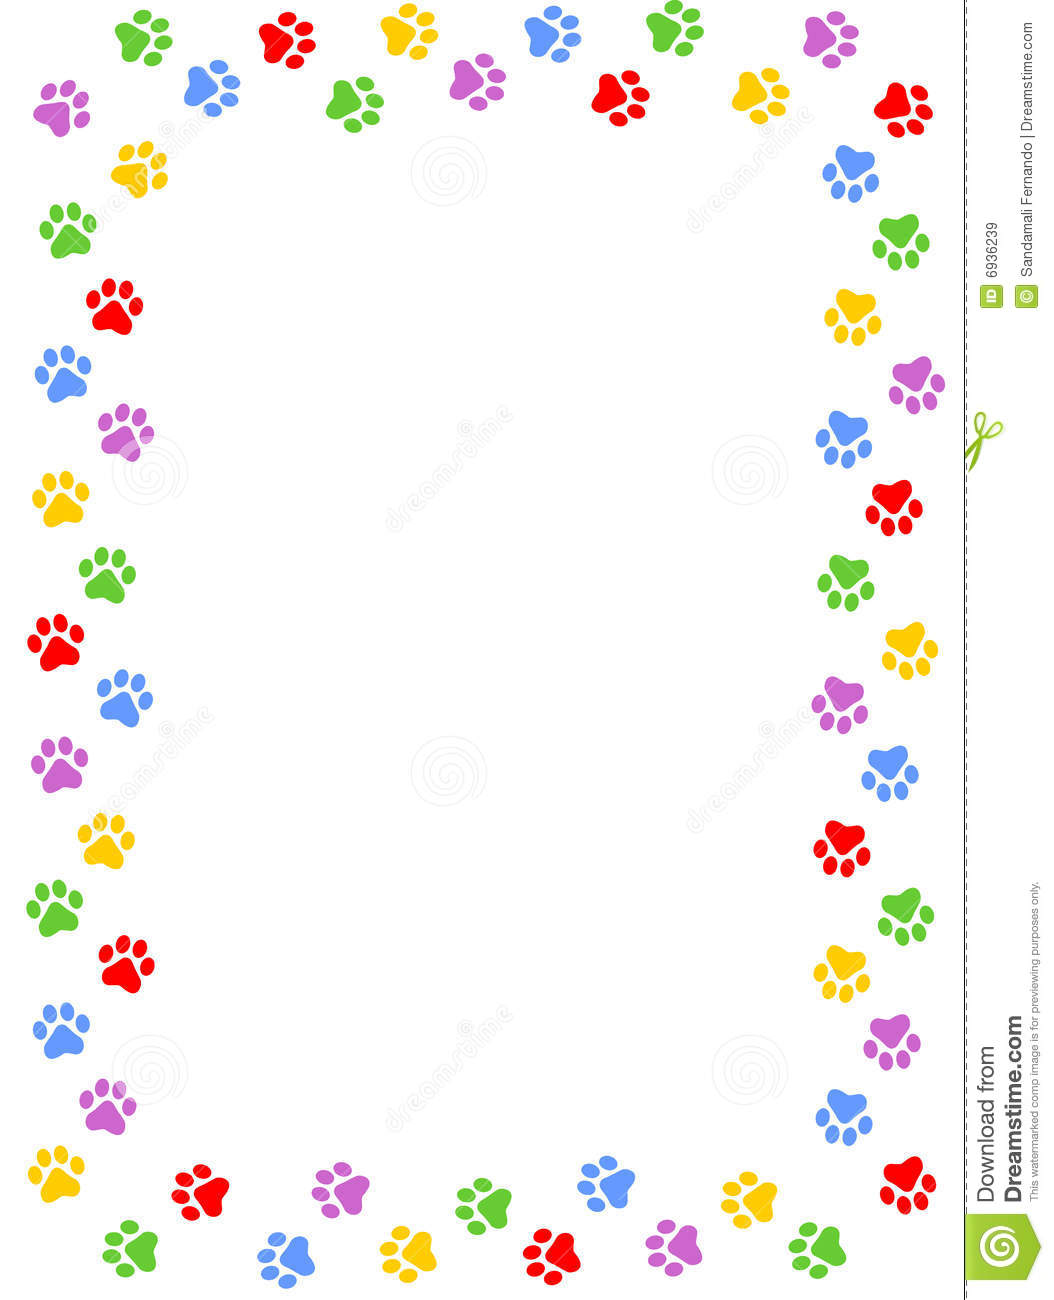 Cute Cartoon Fruit Wallpaper Paw Prints Border Royalty Free Stock Images Image 6936239